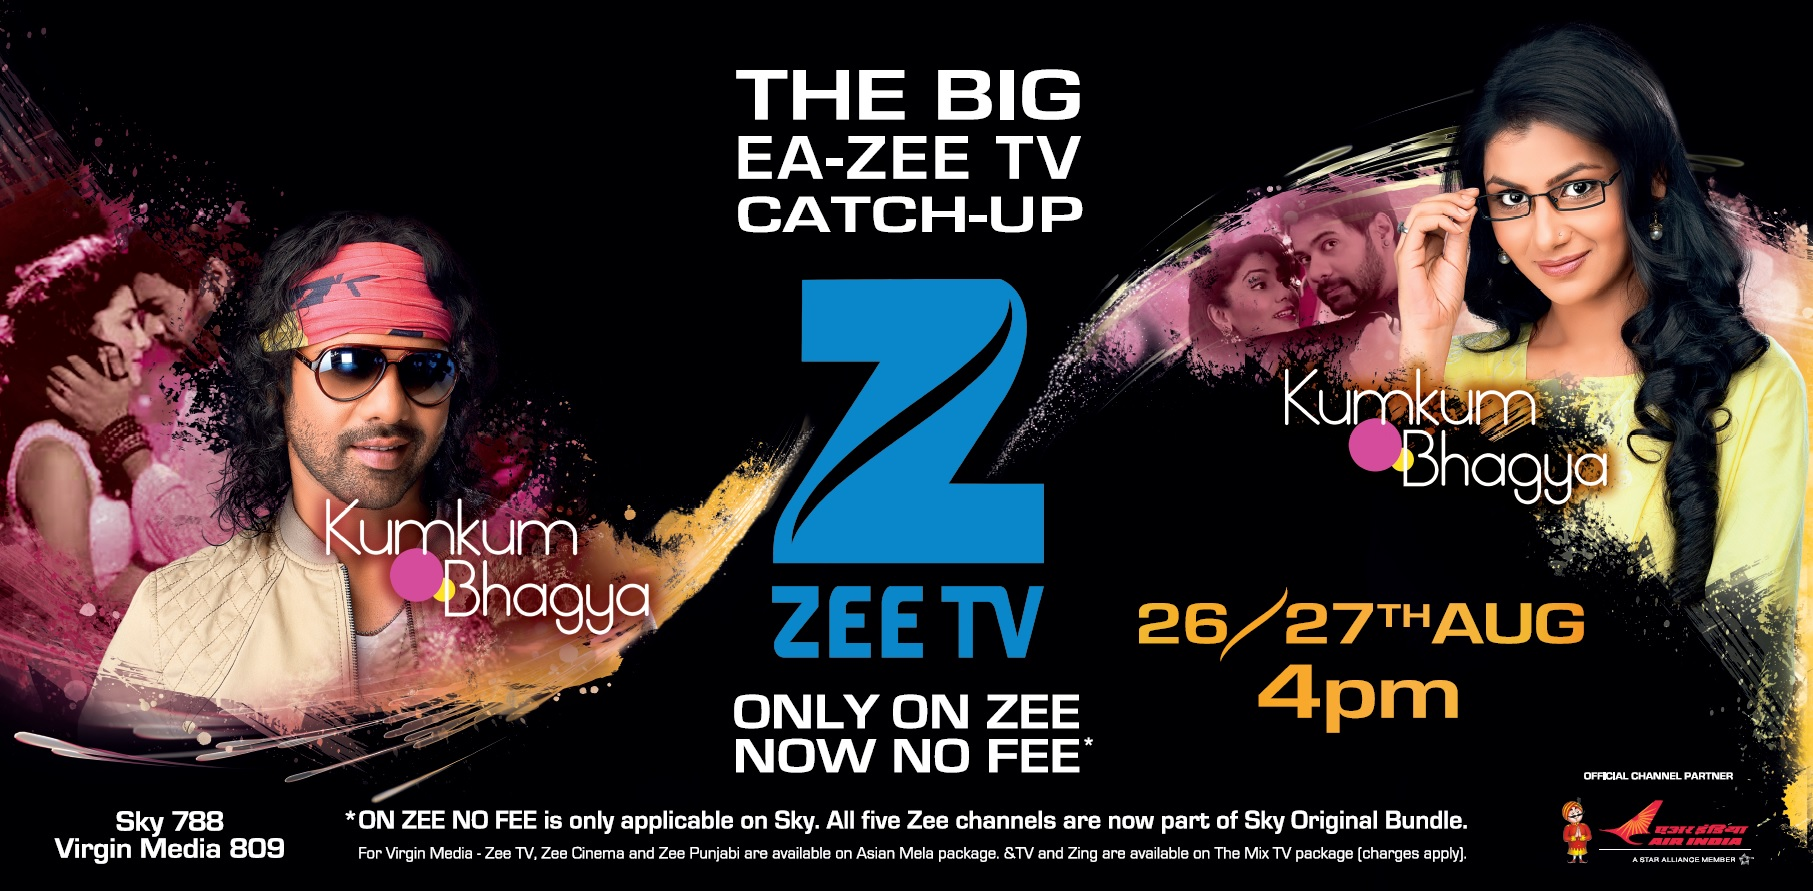 The Big Zee TV Catch-UP